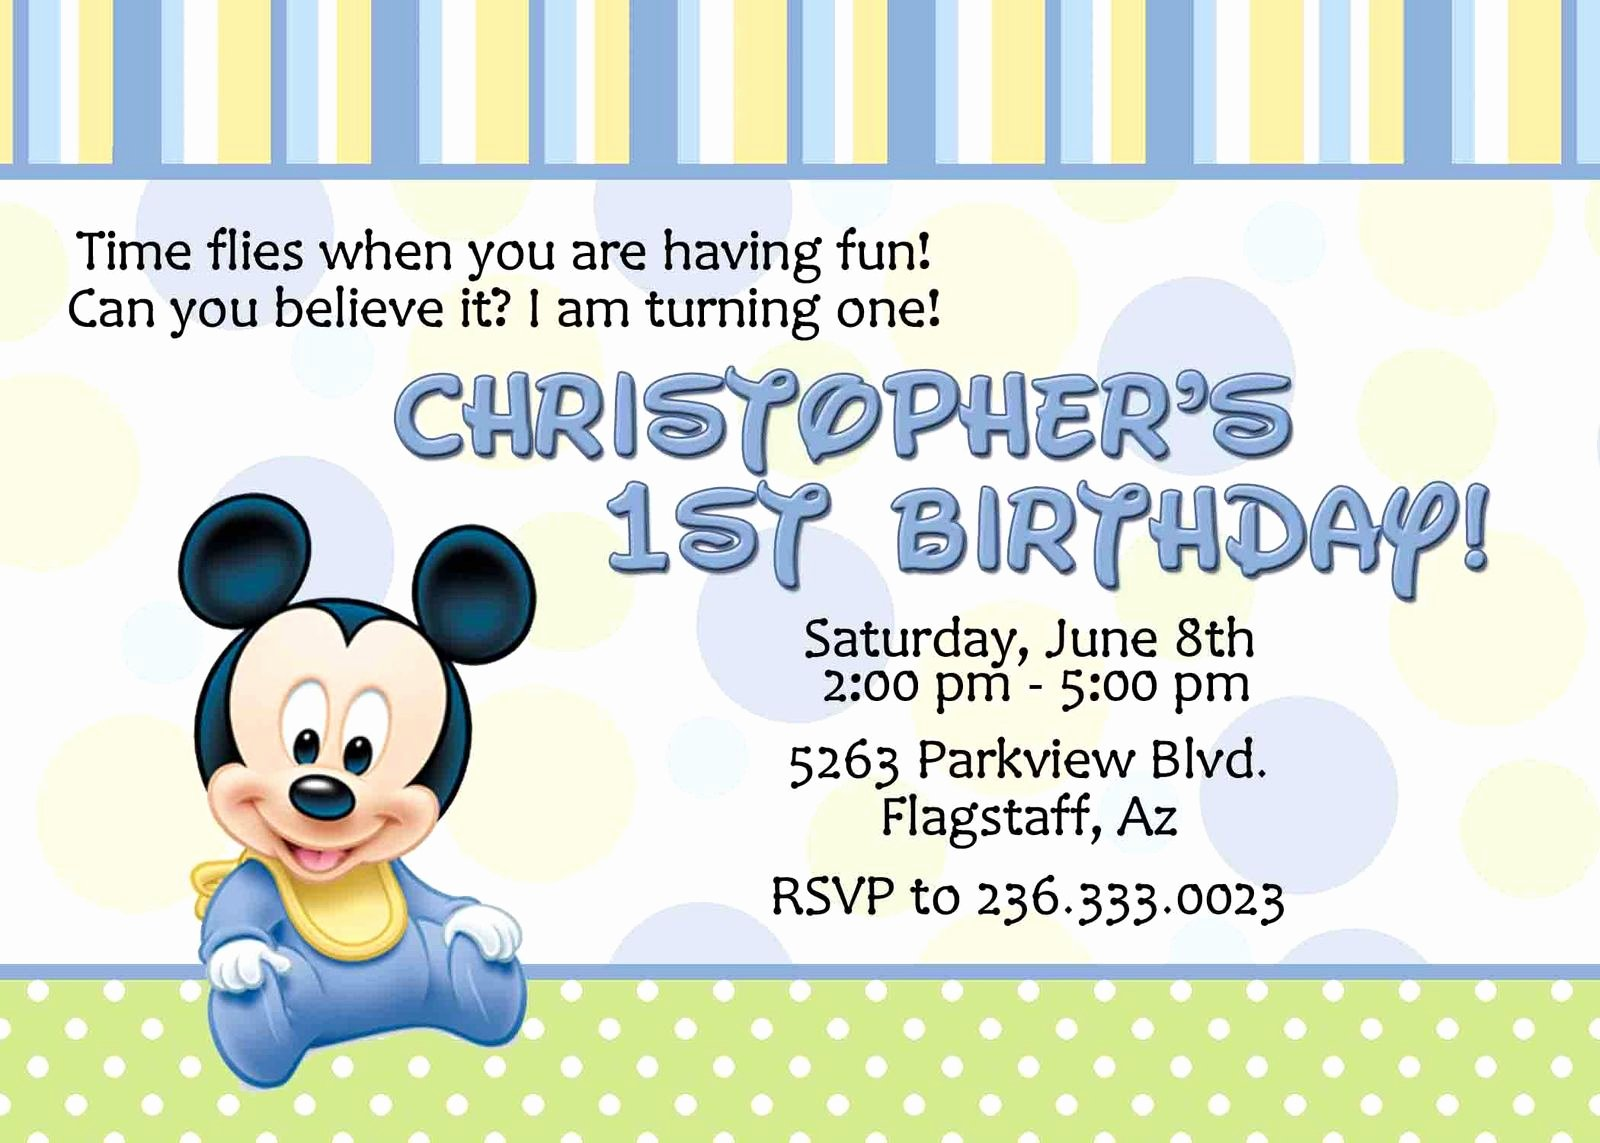 Mickey Mouse Picture Invitations Elegant Baby Mickey Mouse Invitation Set Envelopes Birthday